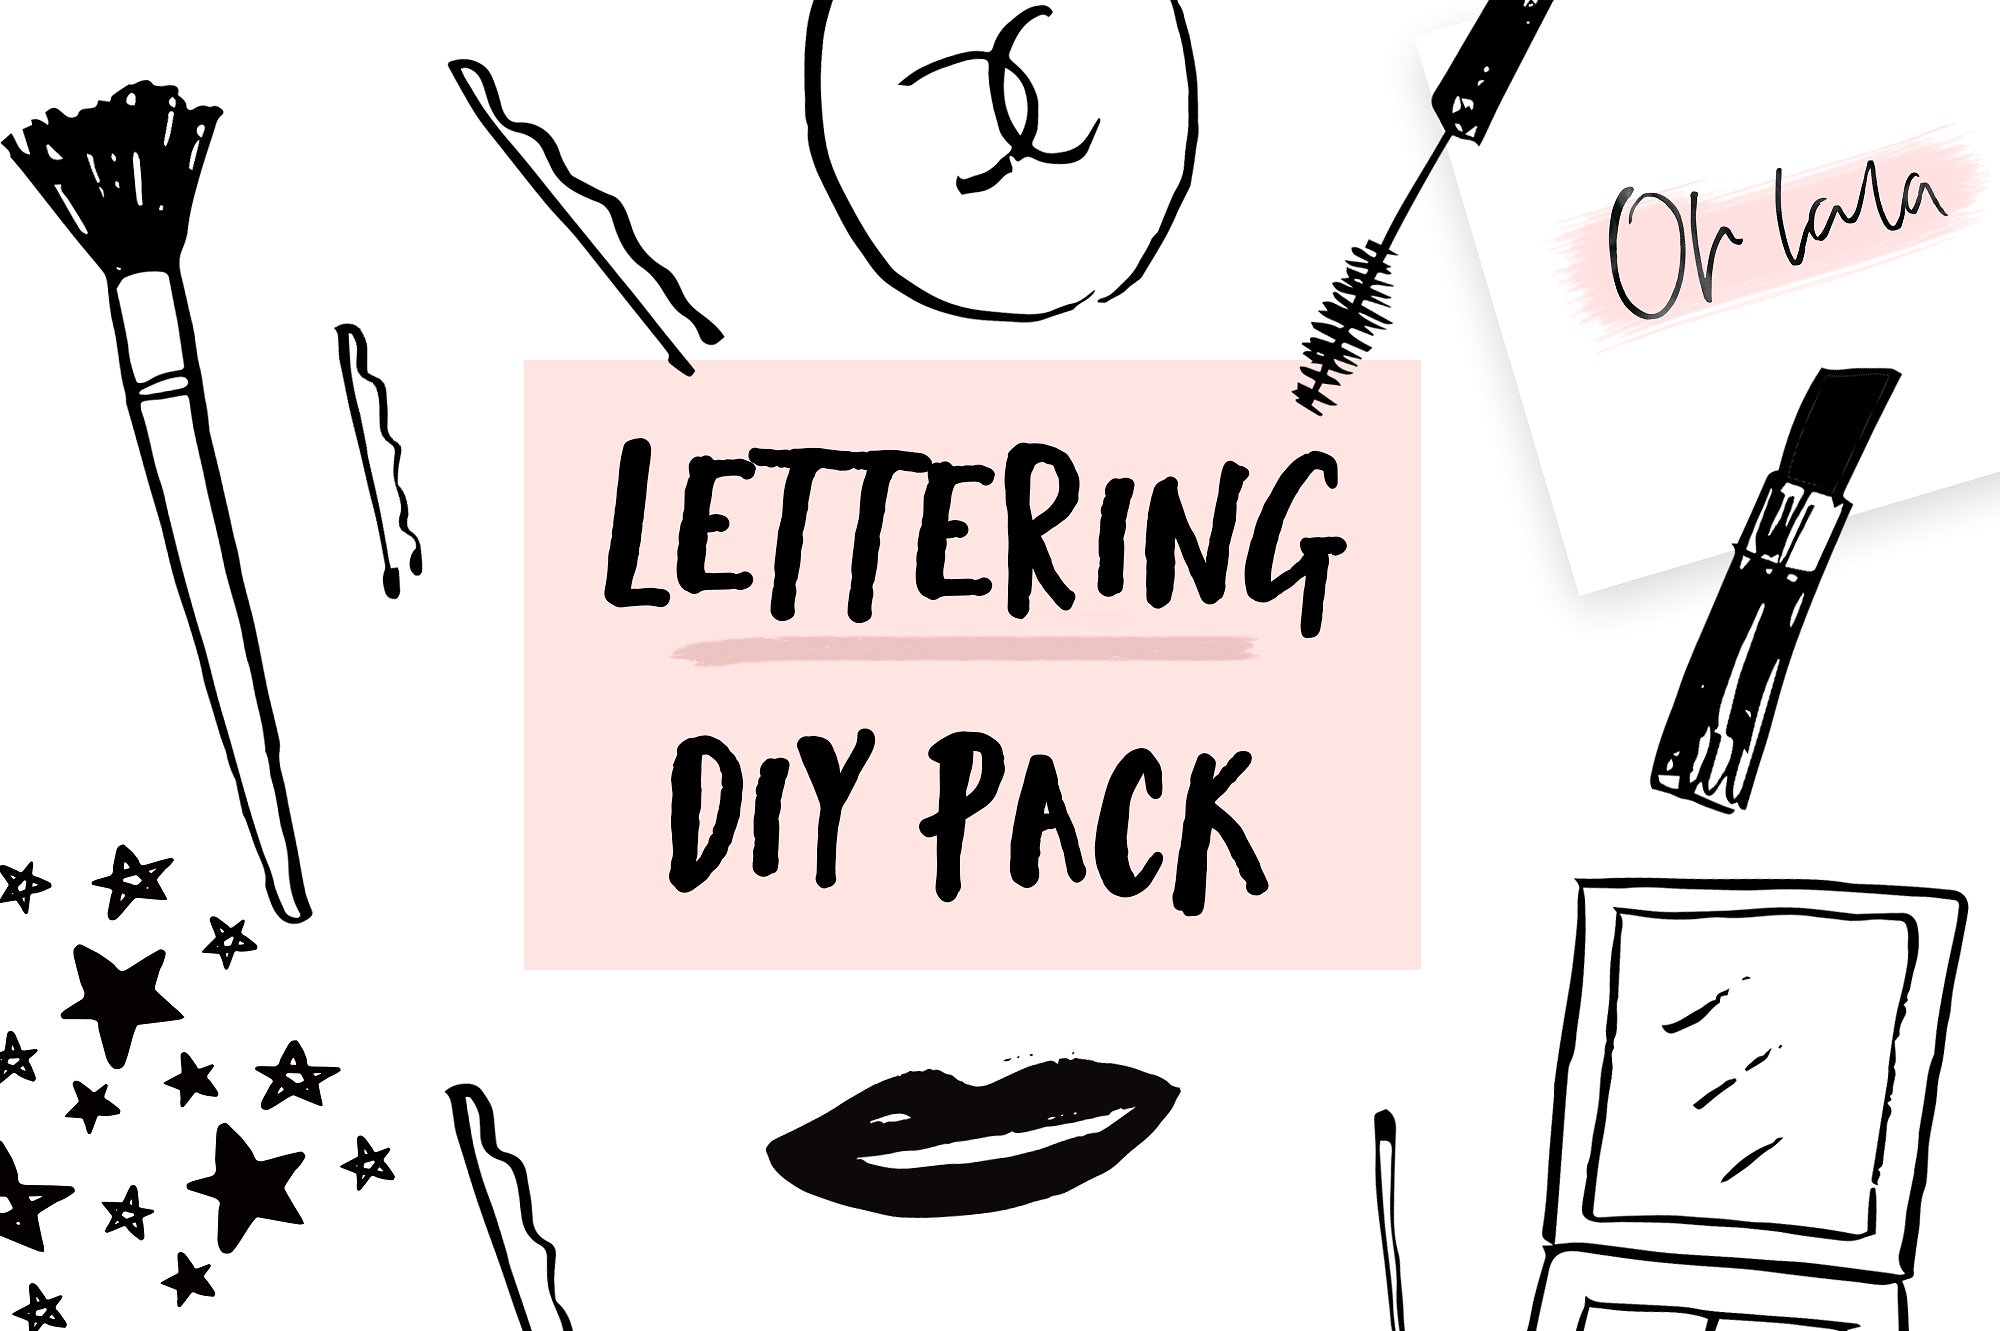 Lettering diy pack example image 10